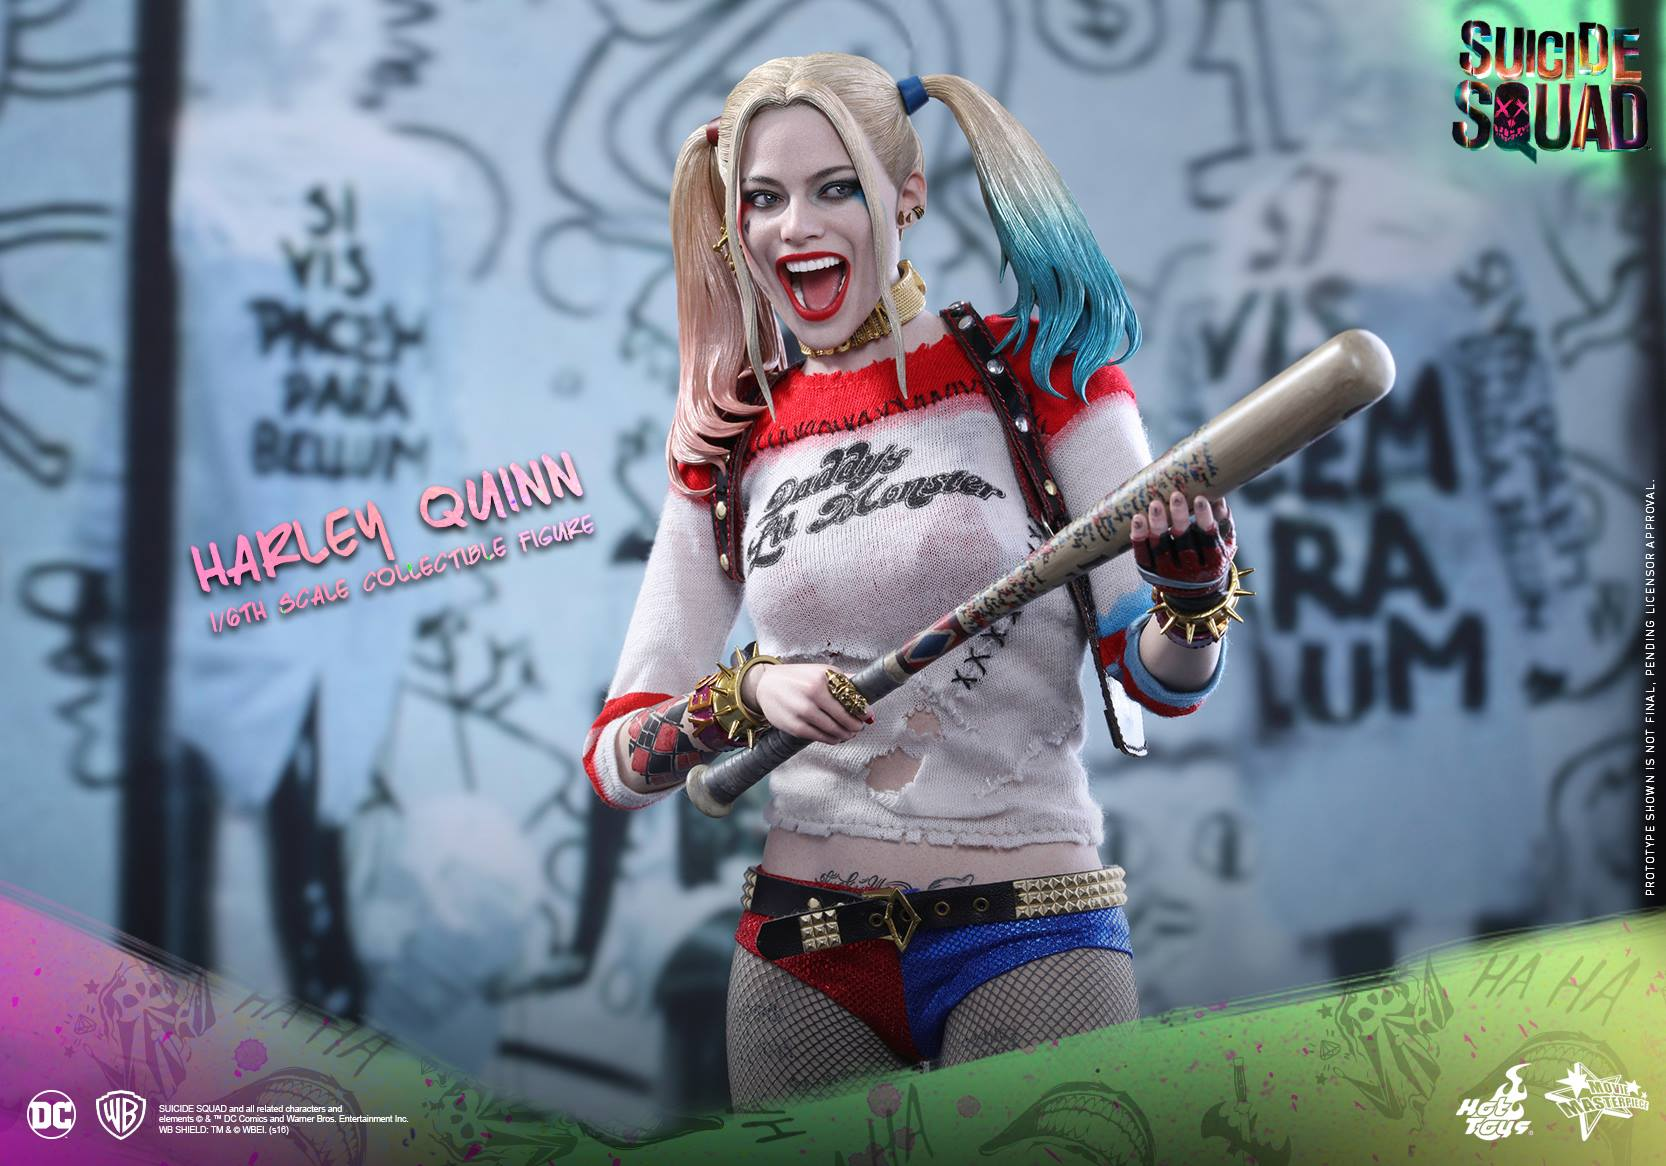 Hot-Toys-Suicide-Squad-Harley-Quinn-13